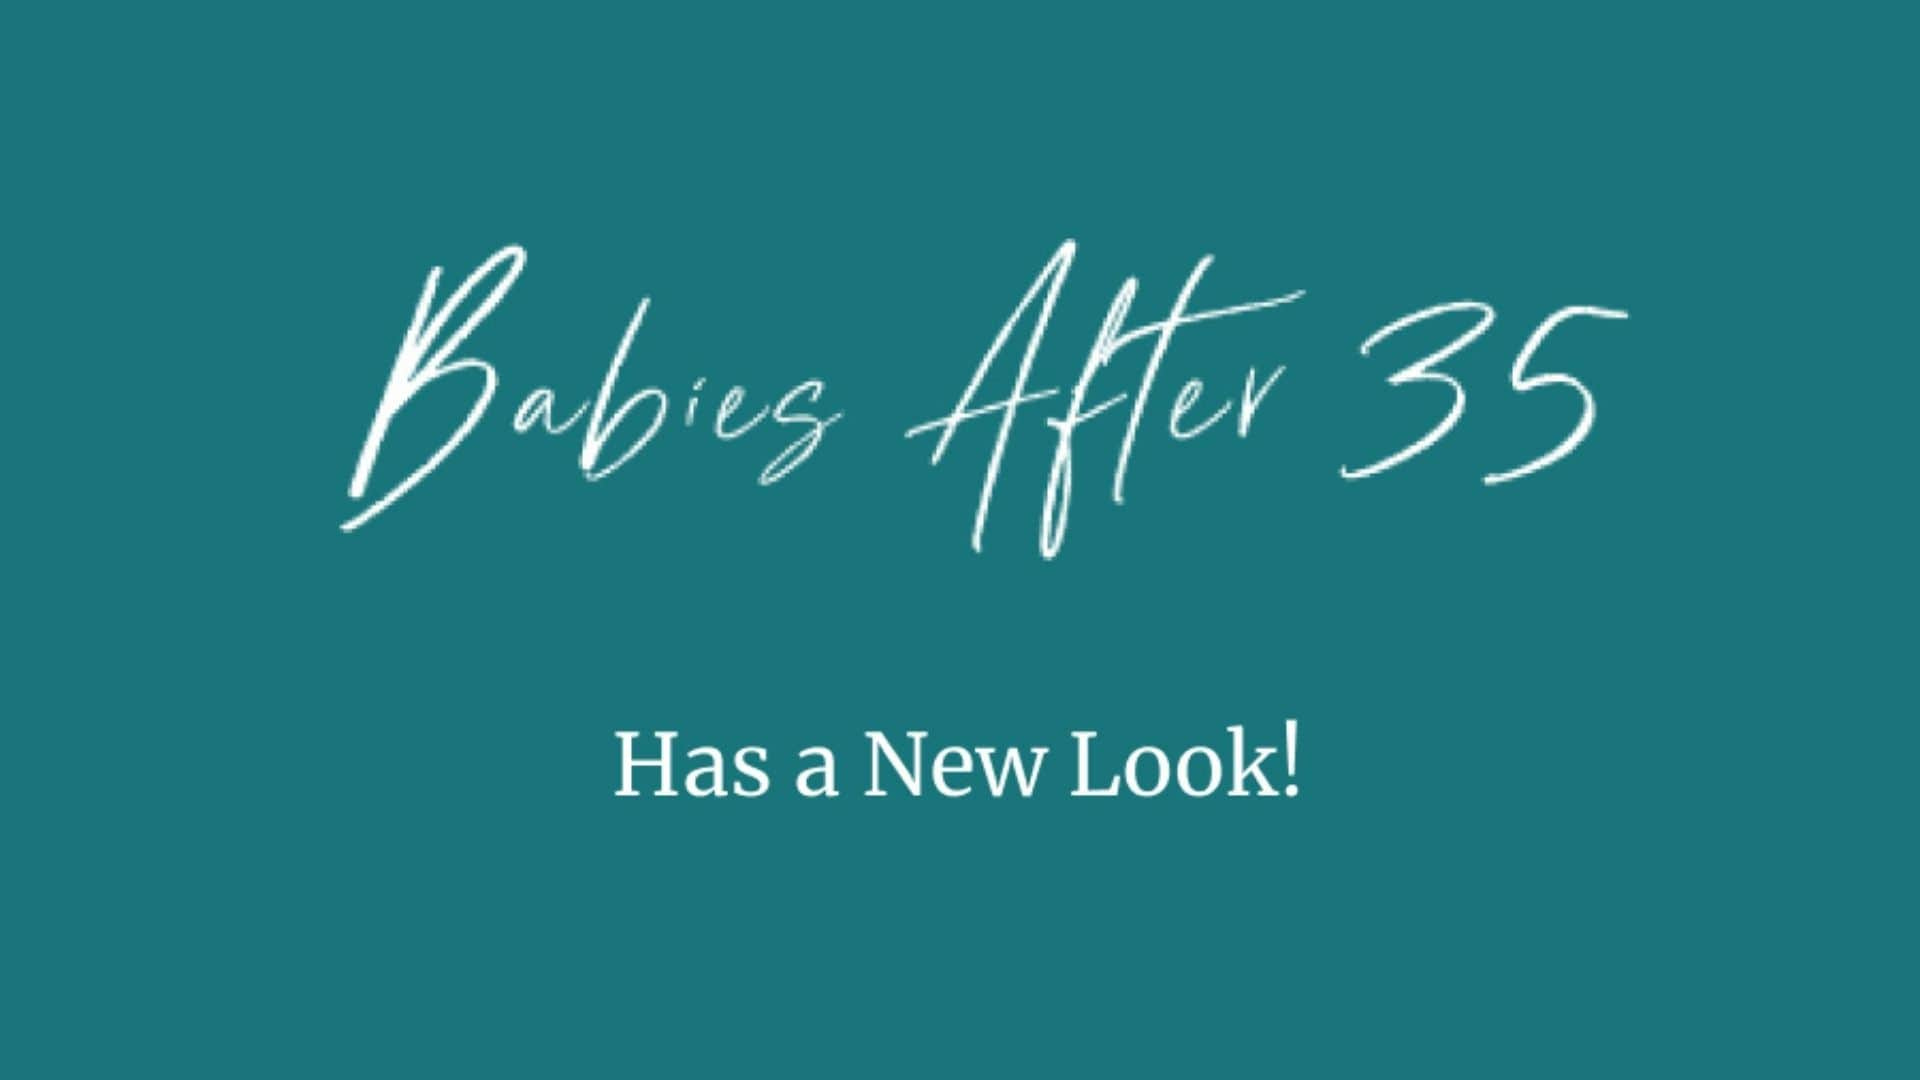 Introducing the New Babies After 35 Website!